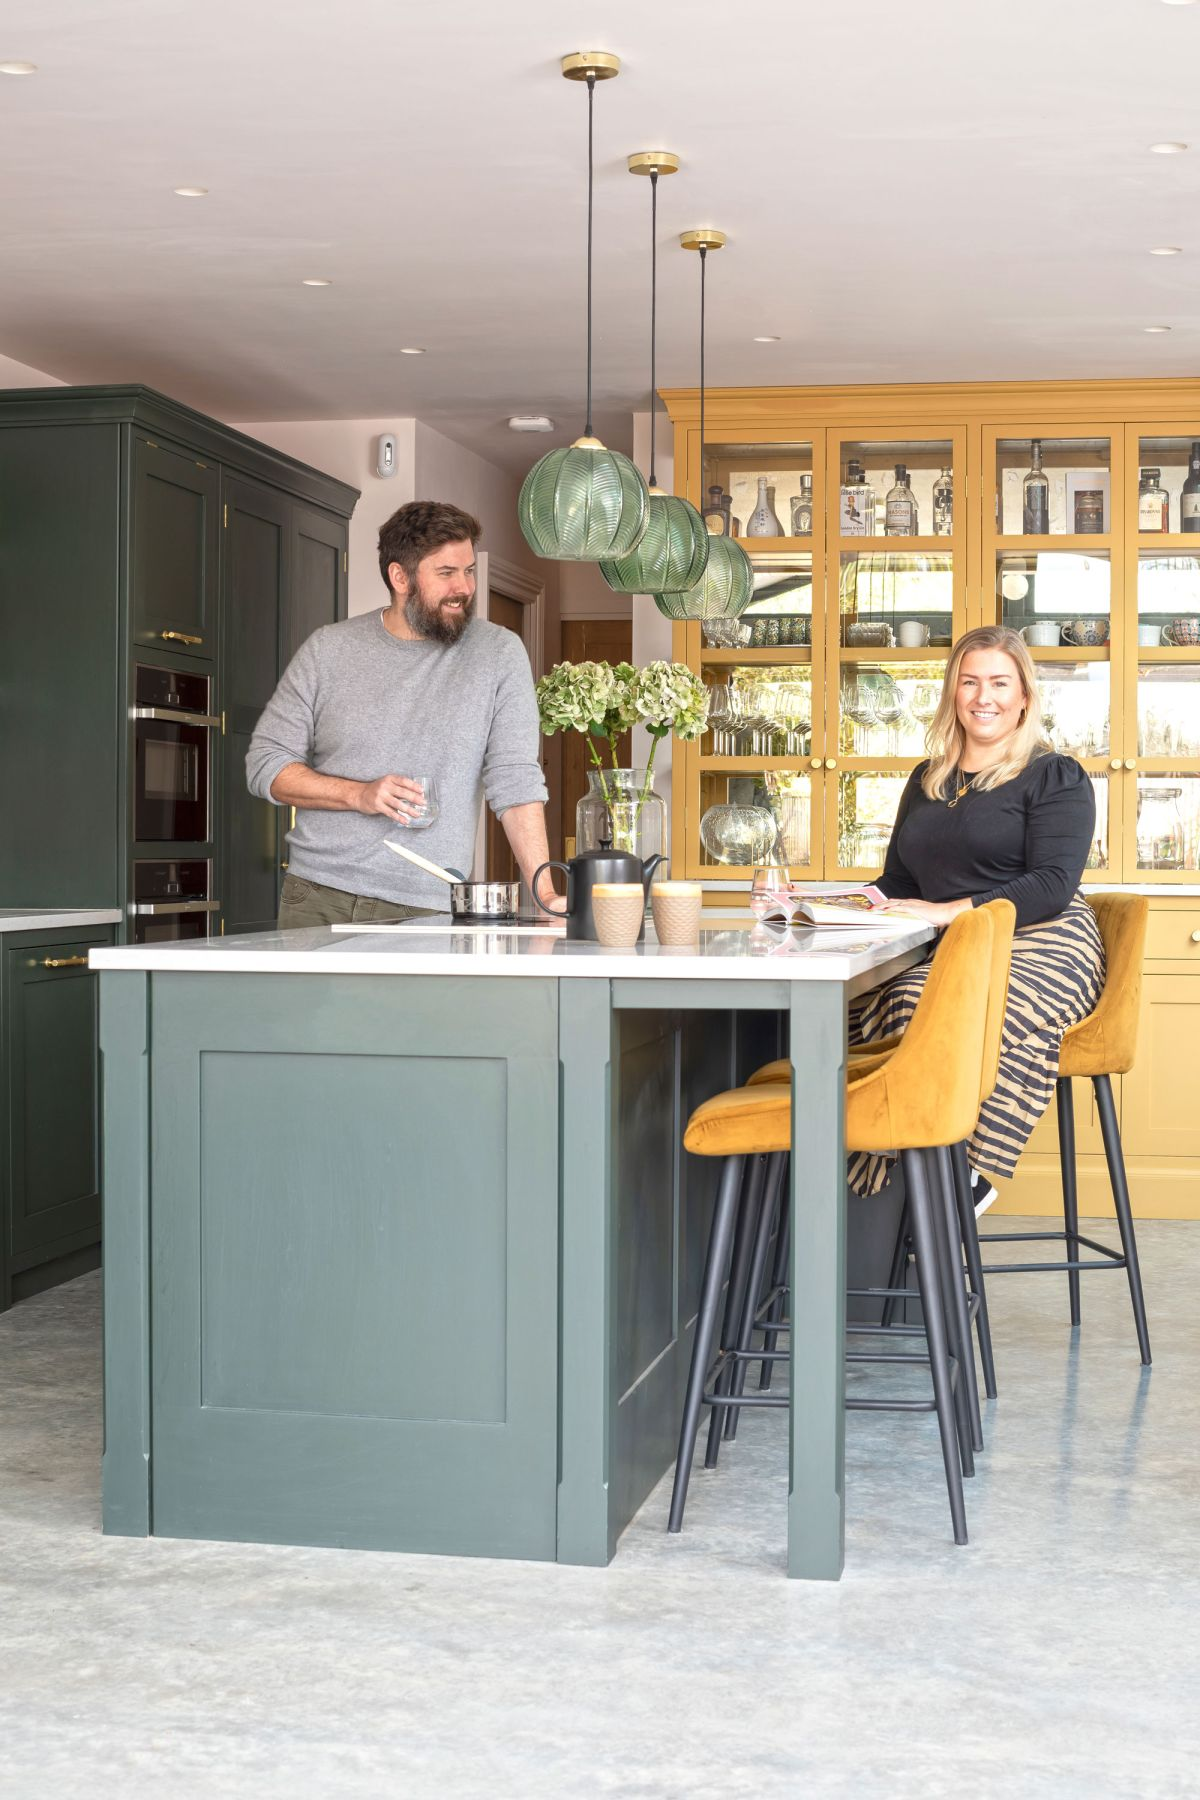 Colourful kitchen is primed for parties.